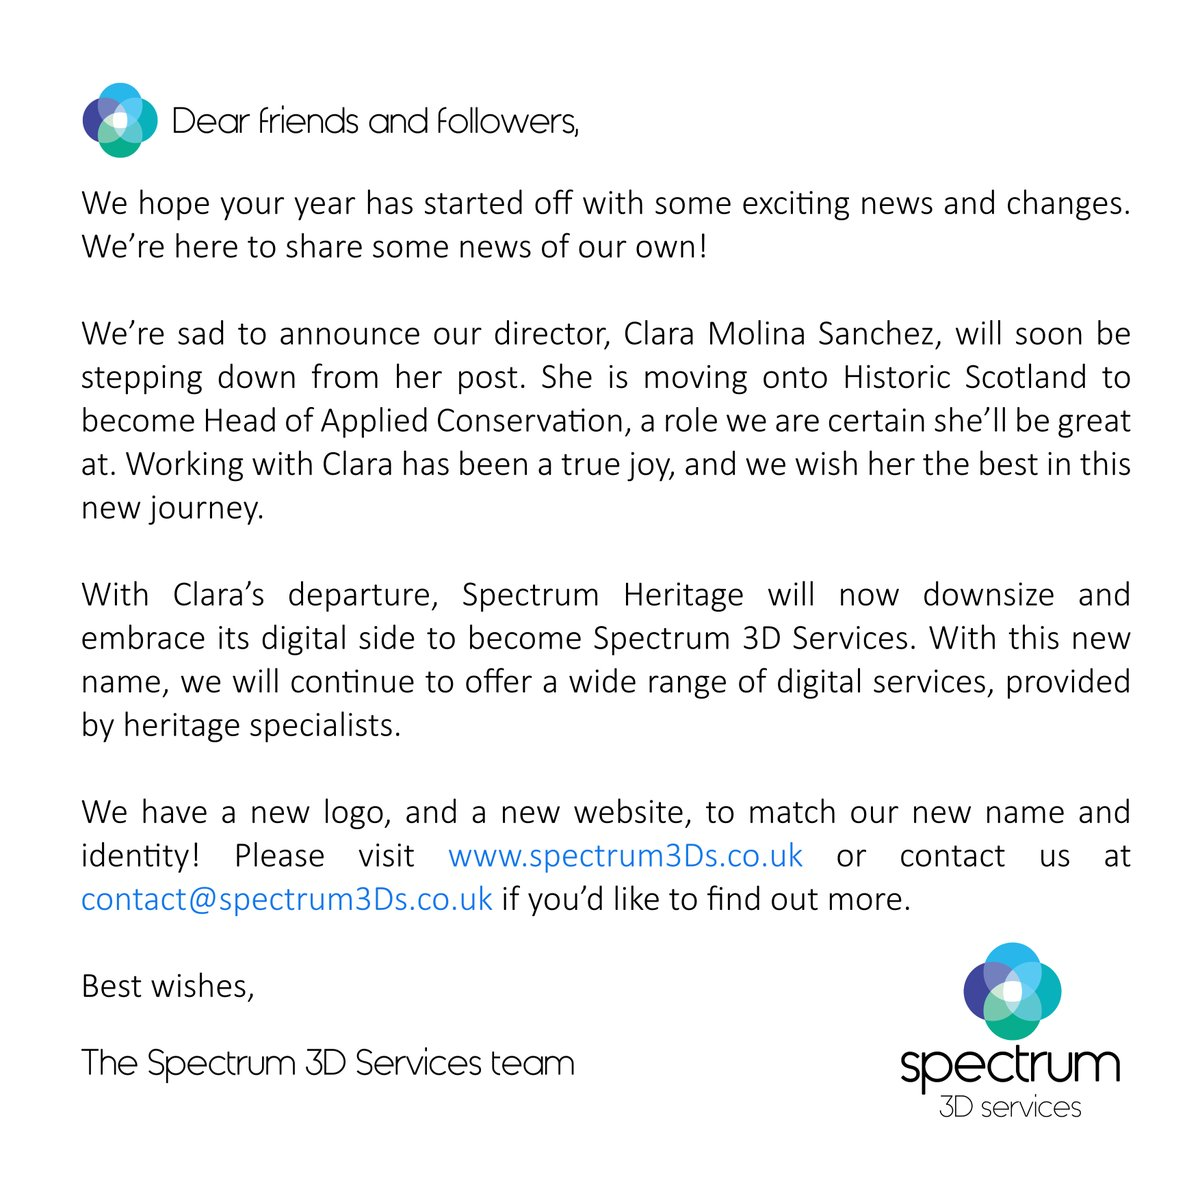 Some important news from the Spectrum team! #digitalheritage #3Dservices